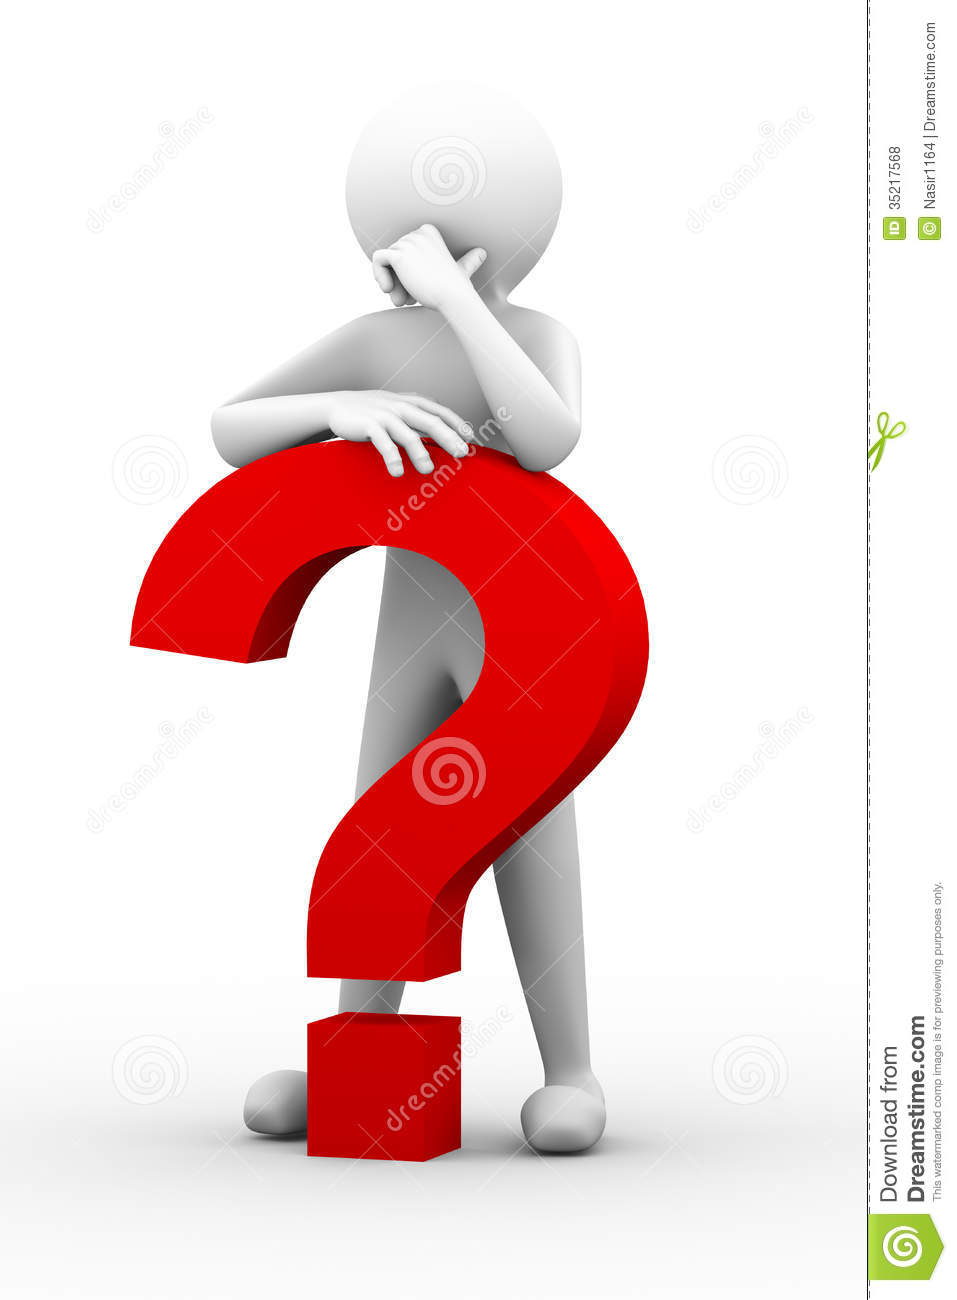 3d Confused Person With Question Mark Illustration Stock ...